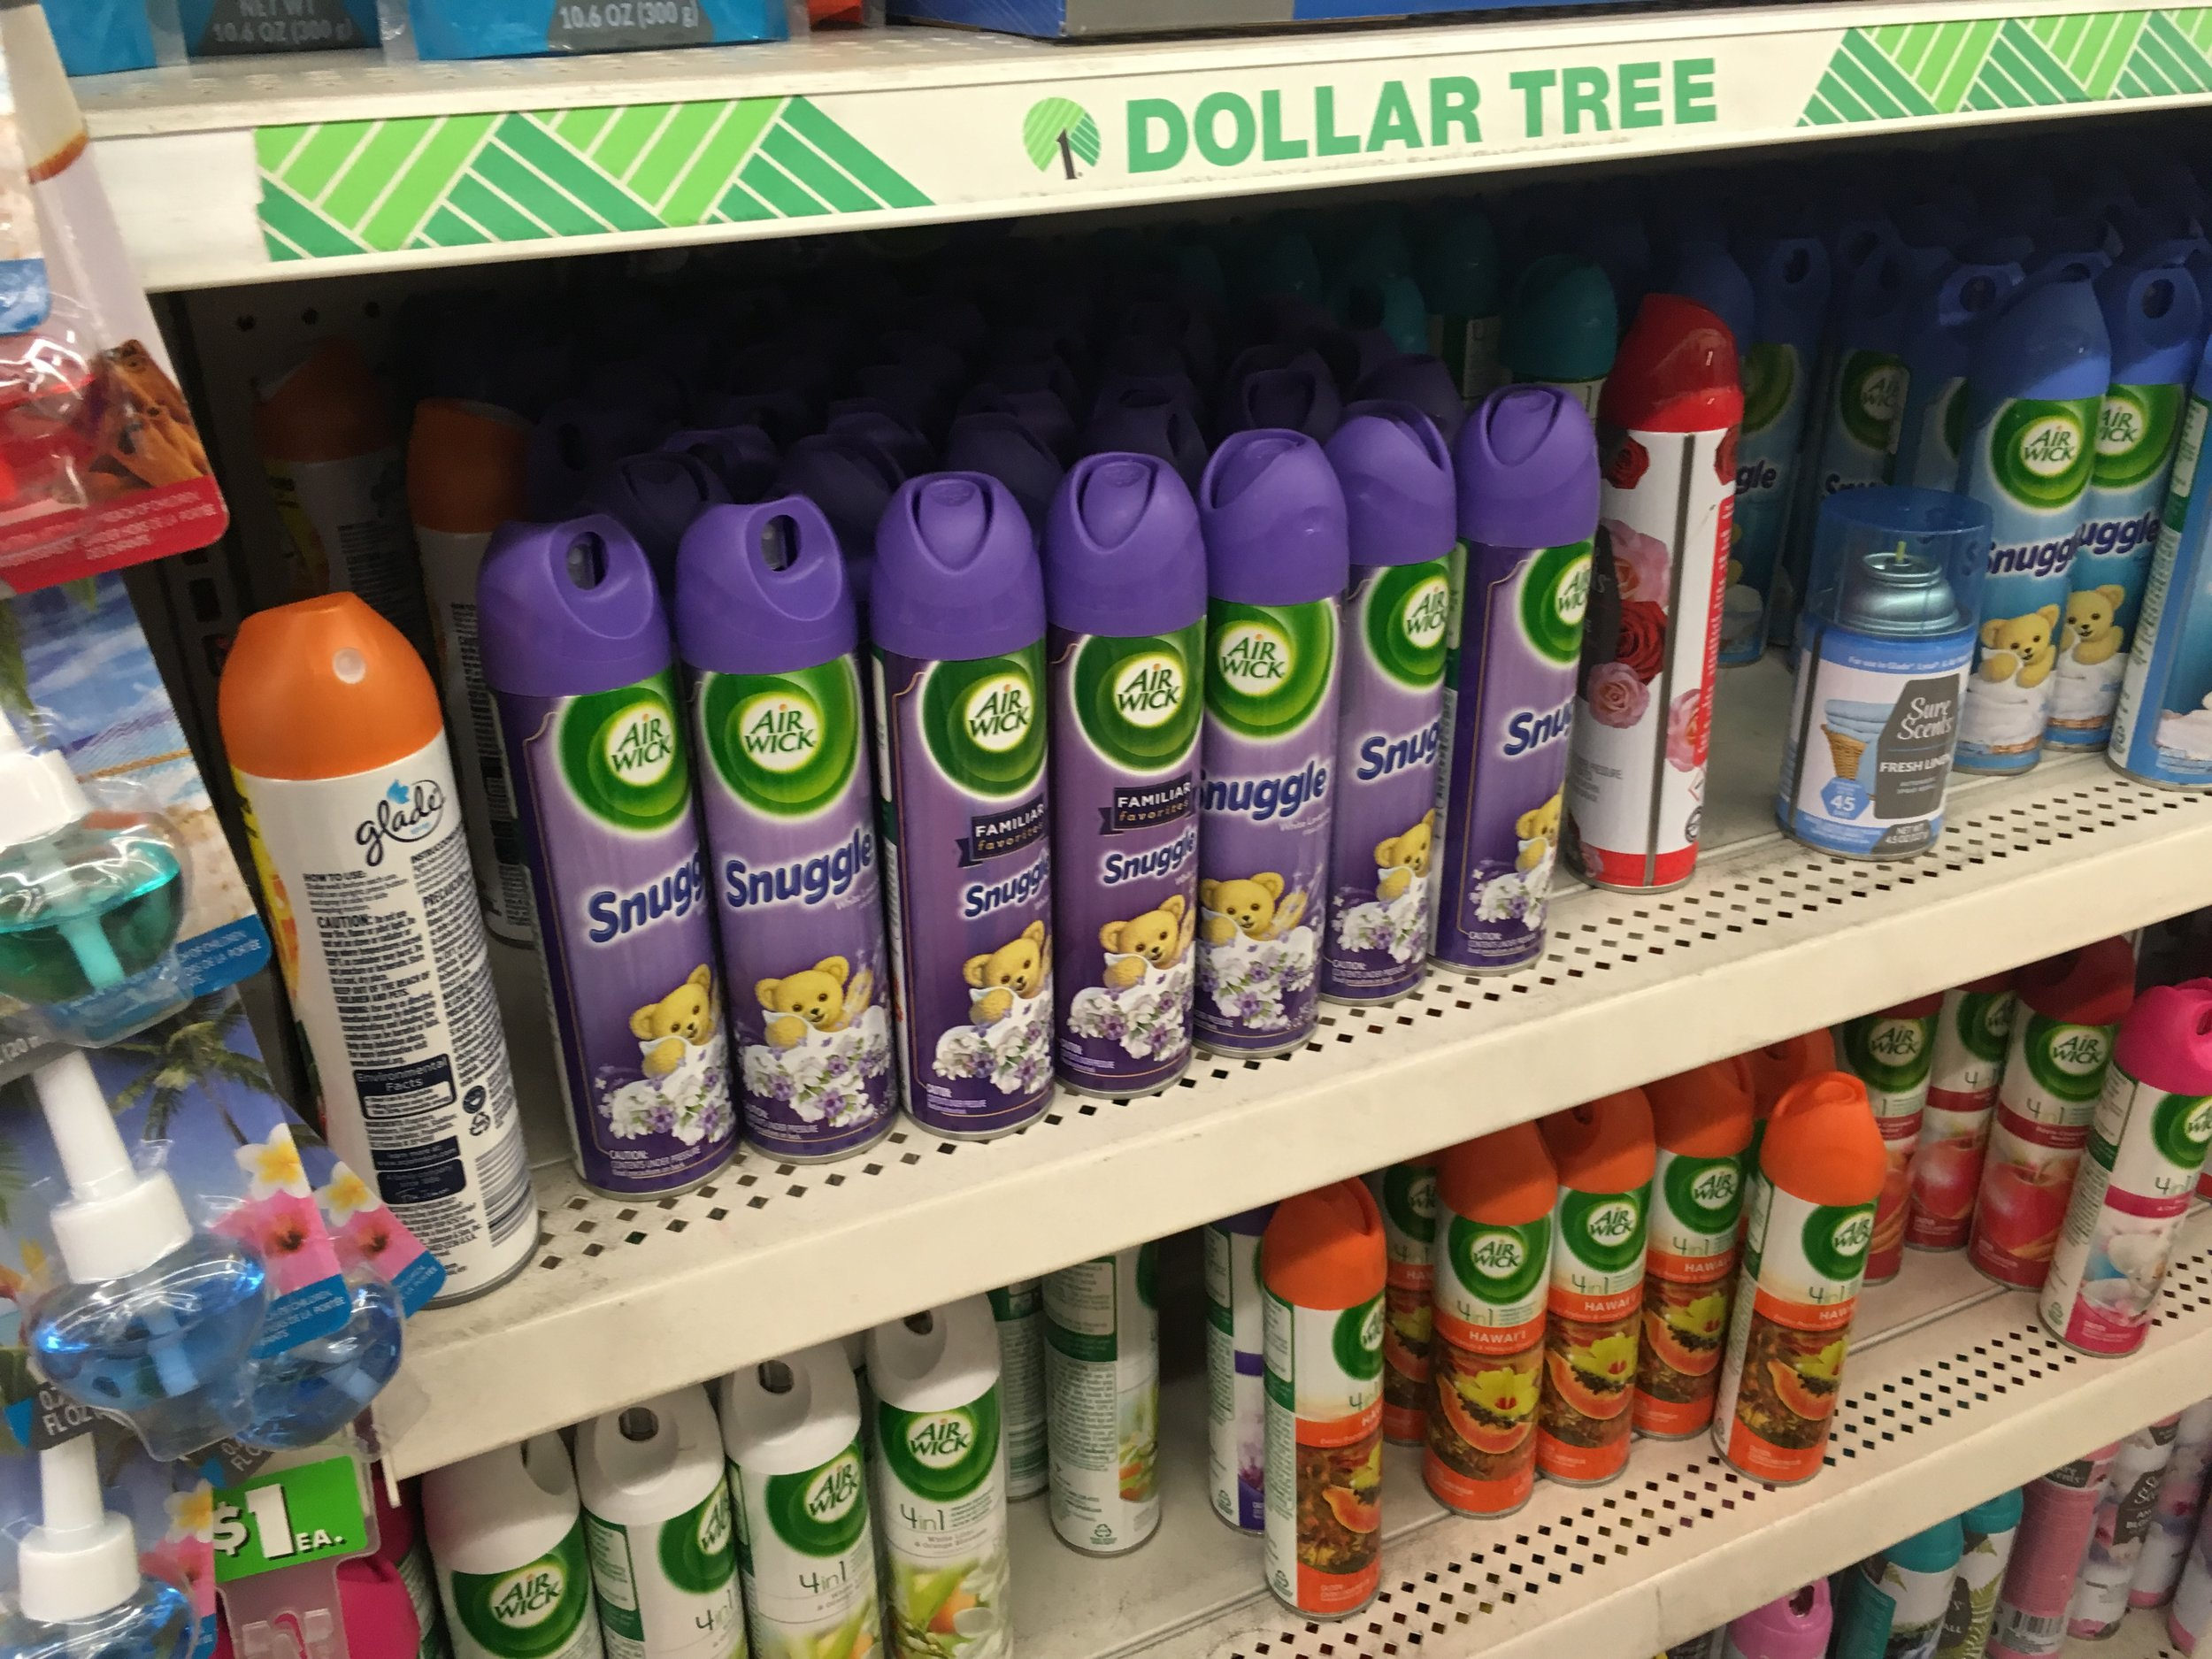 dollar store deals - things you should always buy at the dollar store - whatthegirlssay.com